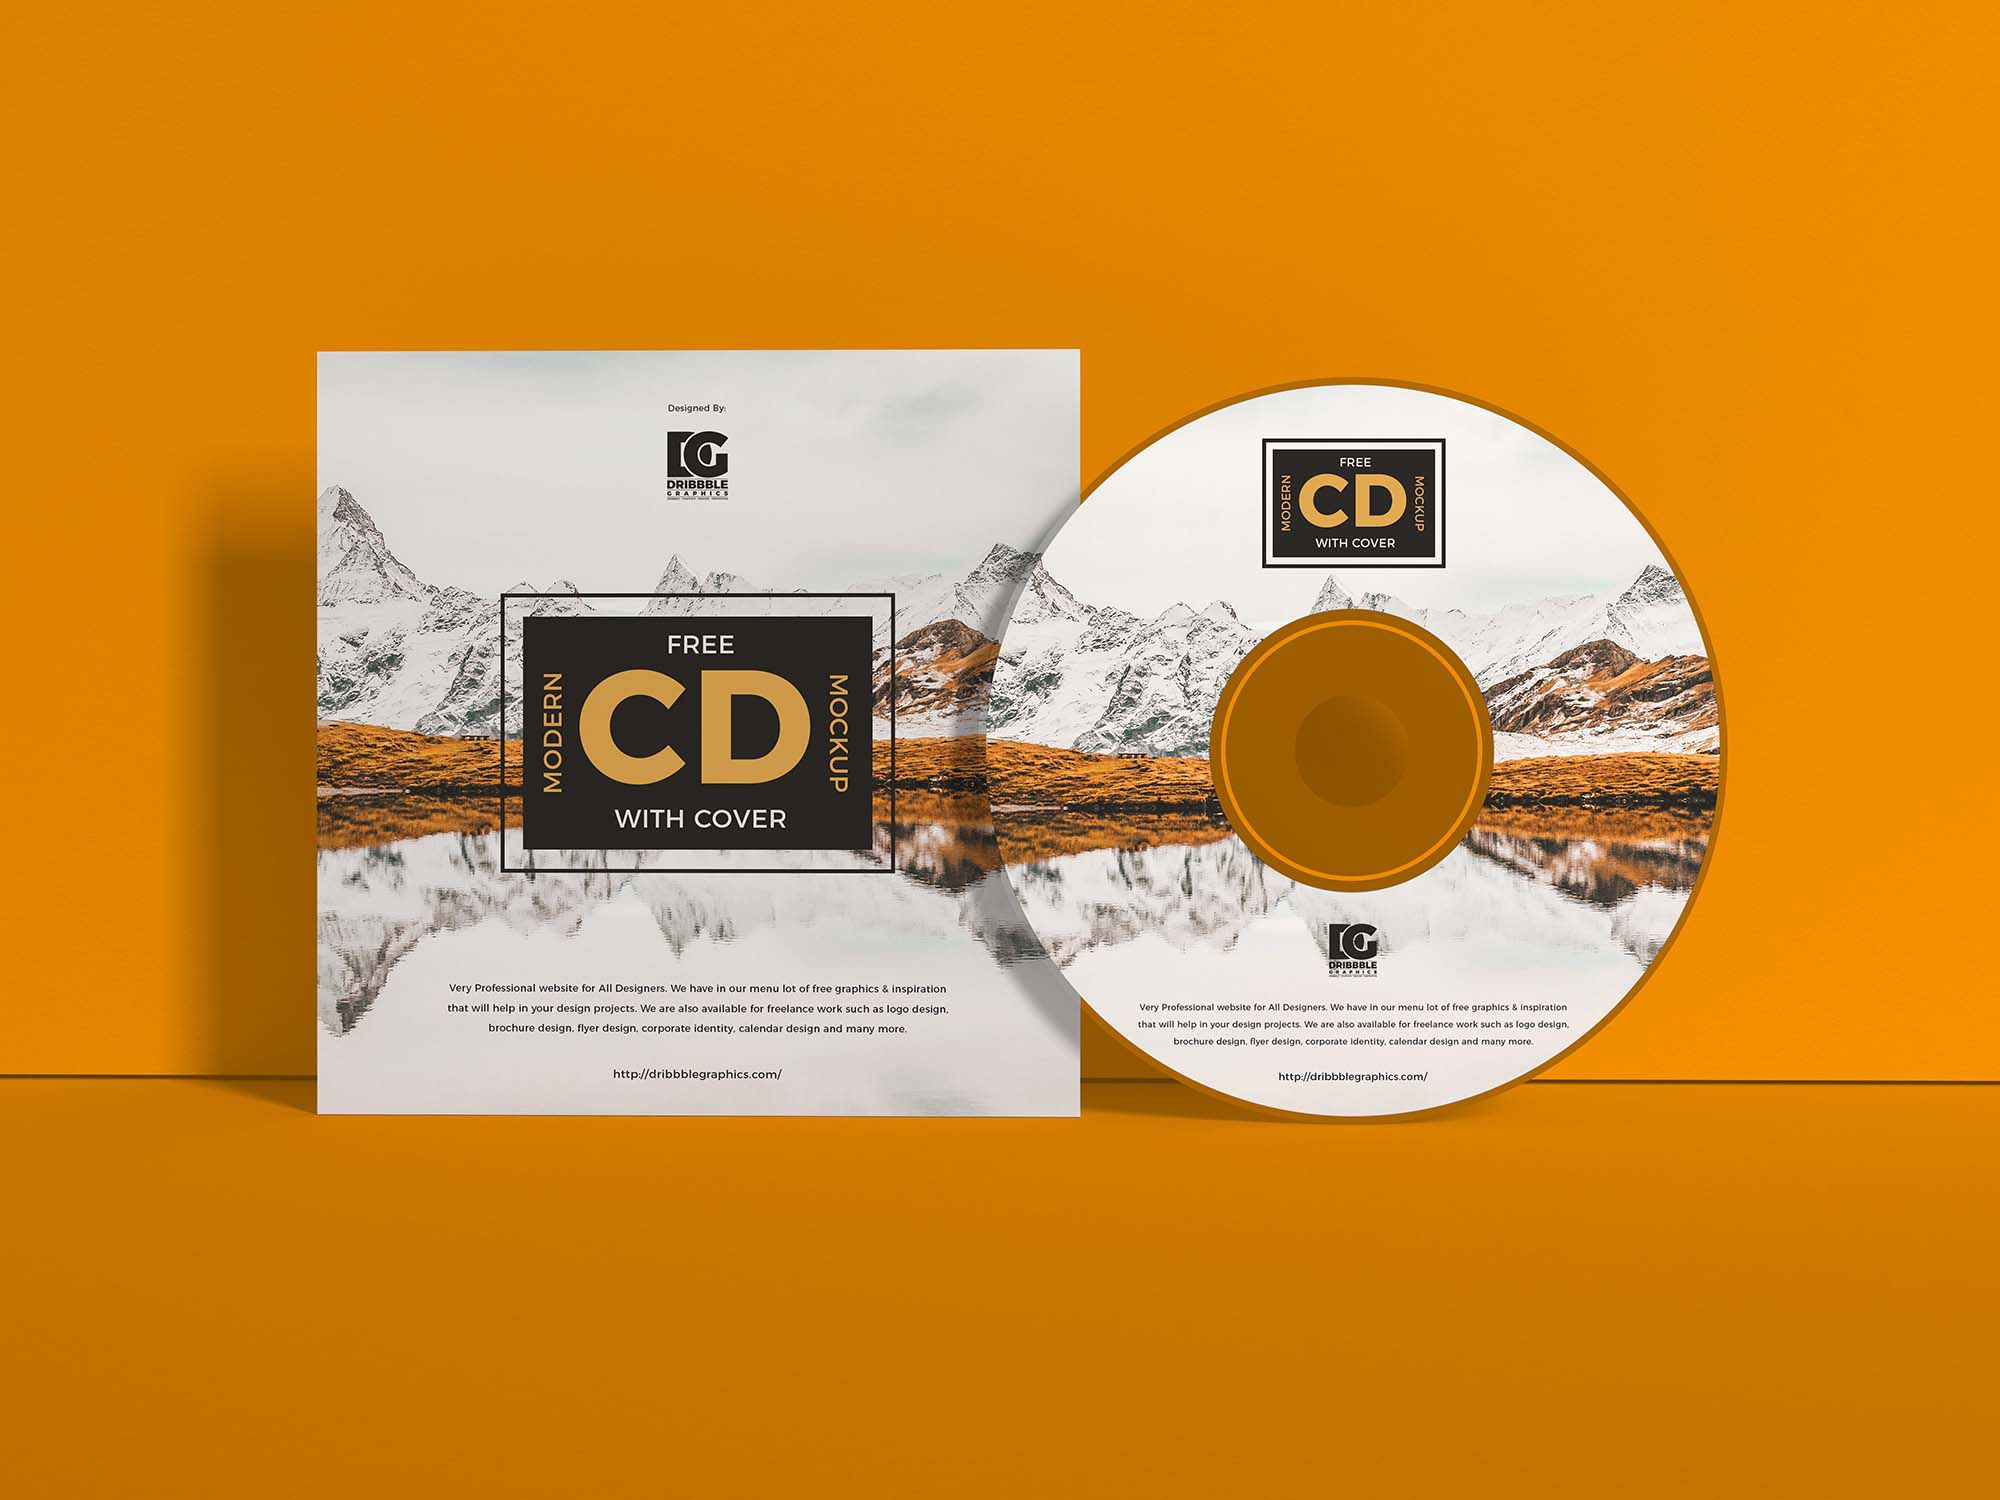 002 Stunning Music Cd Cover Design Template Free Download Example Full